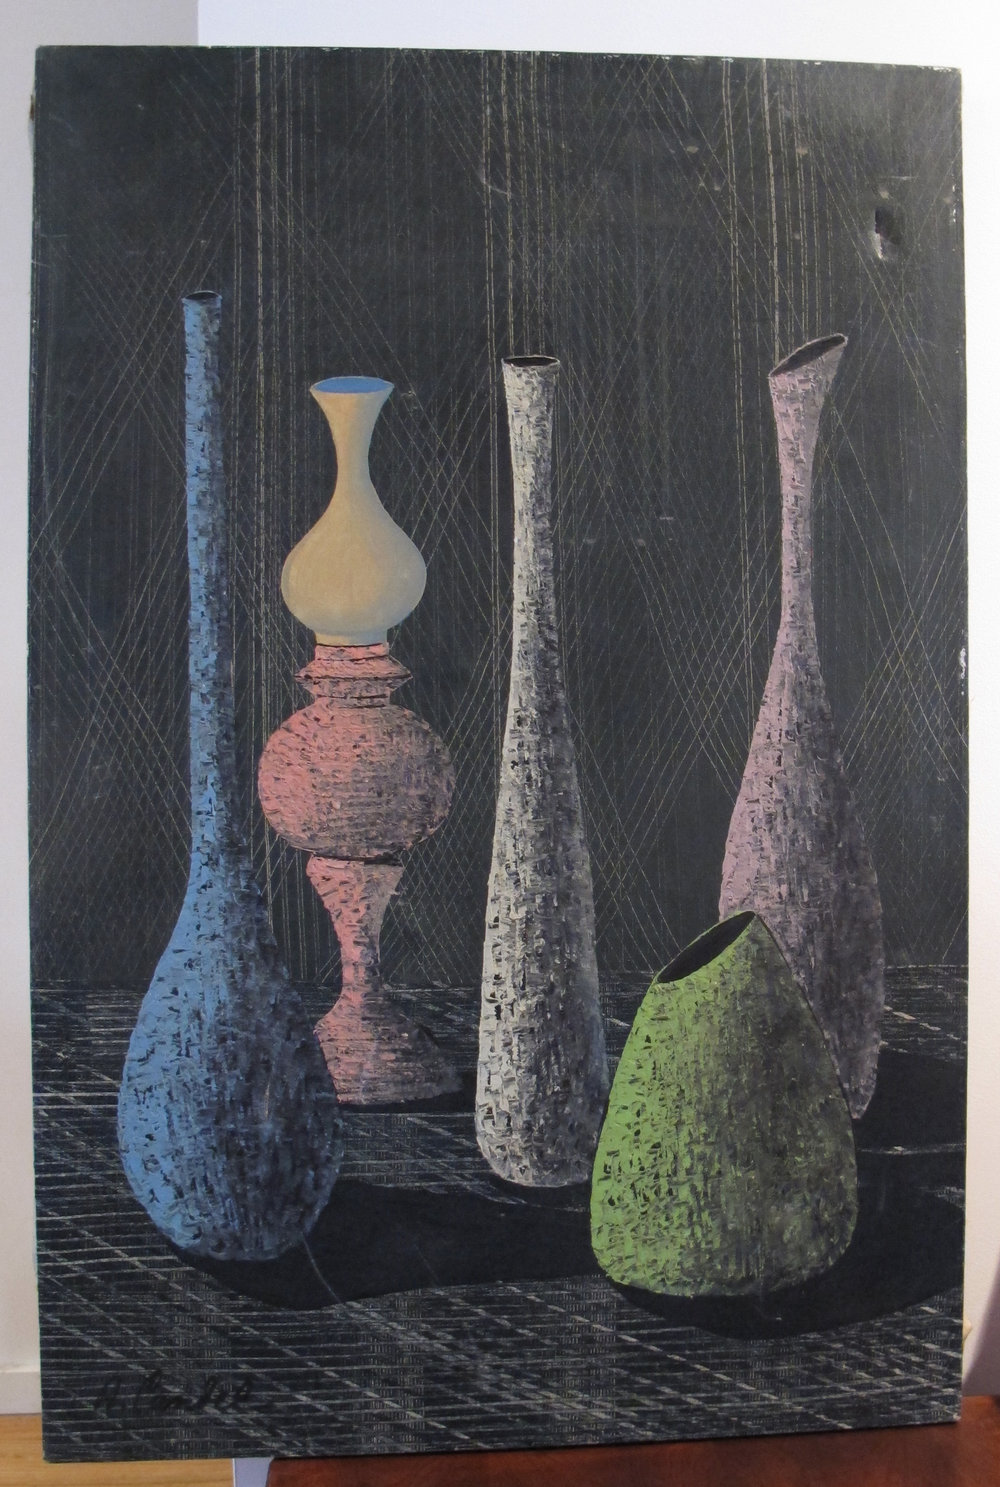 MID CENTURY STILL LIFE WITH VASES BY A. CANEL, C.1960